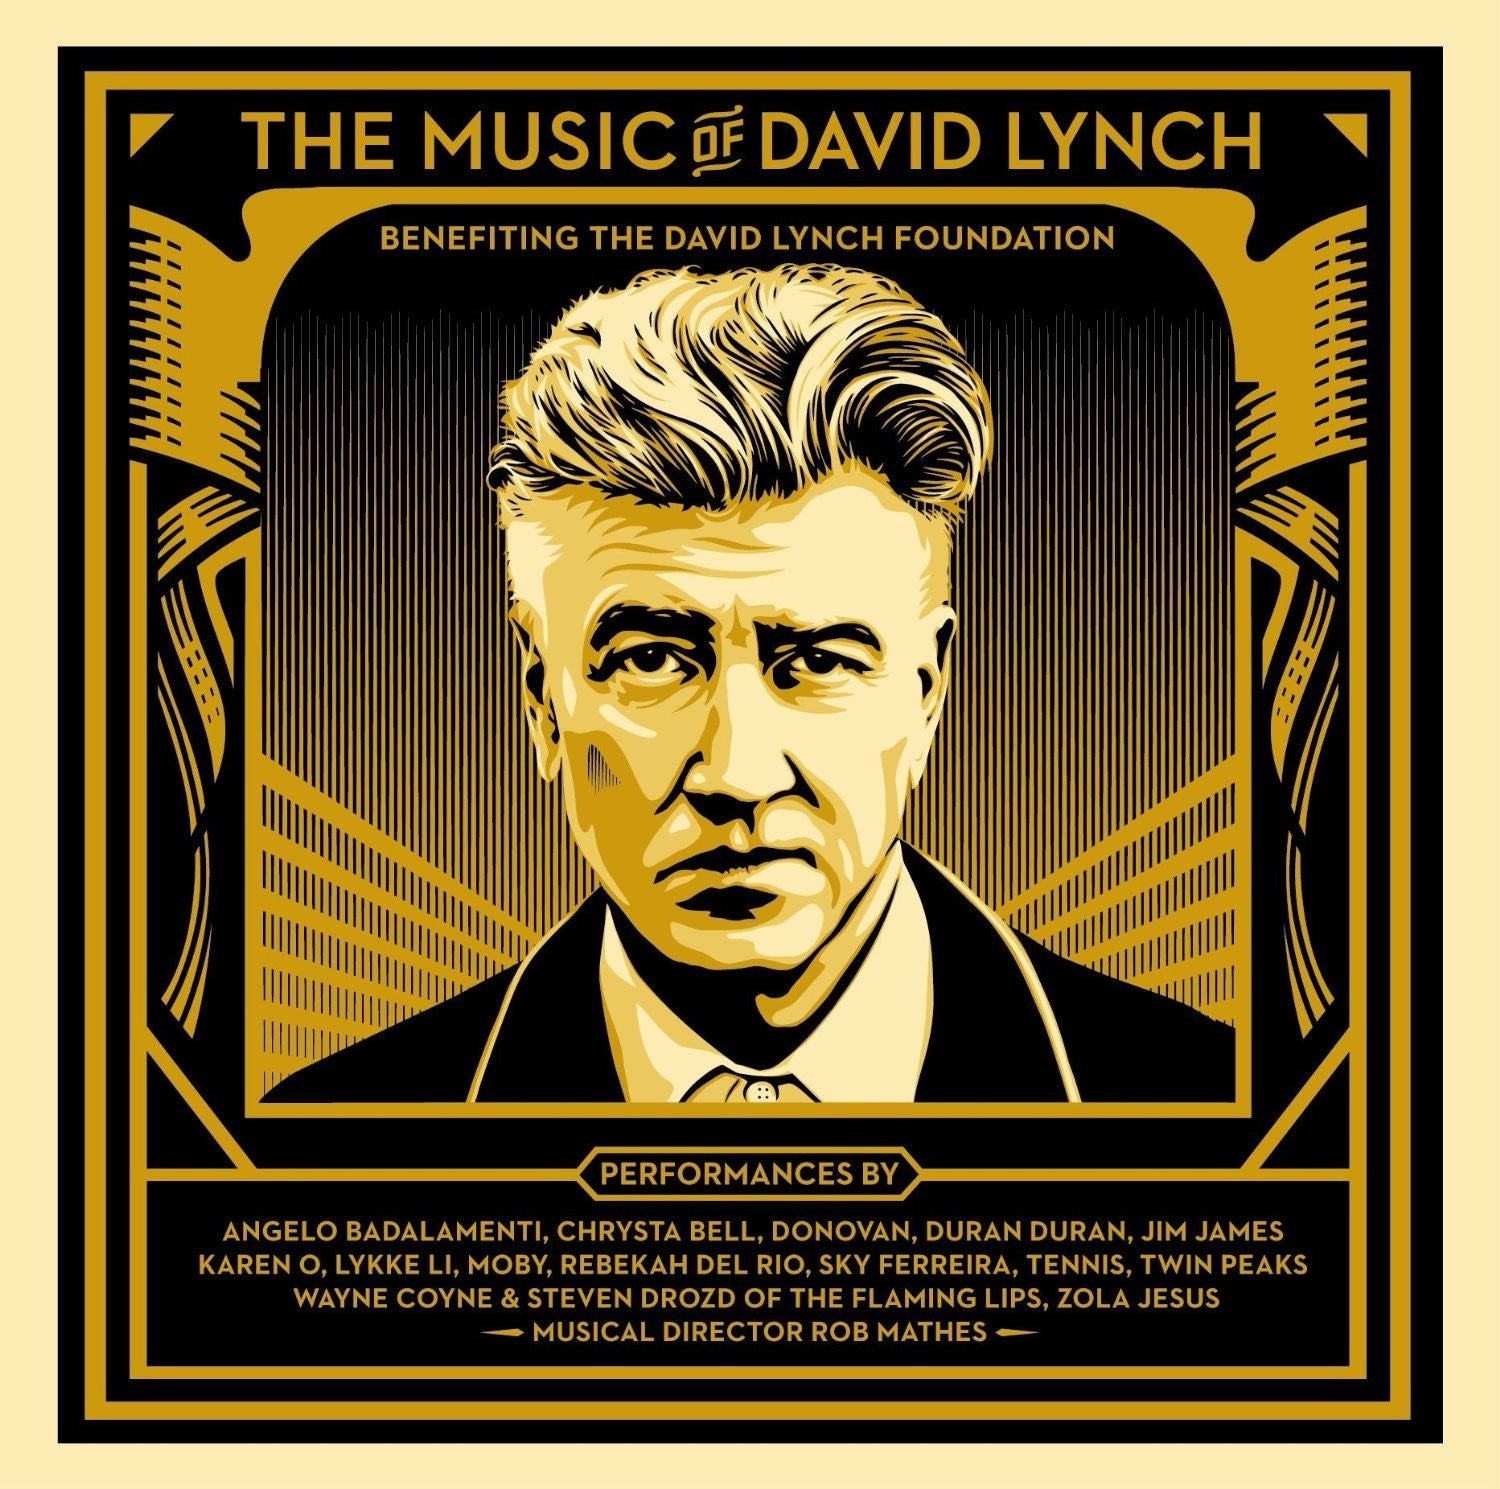 VA - The Music Of David Lynch 2xLP